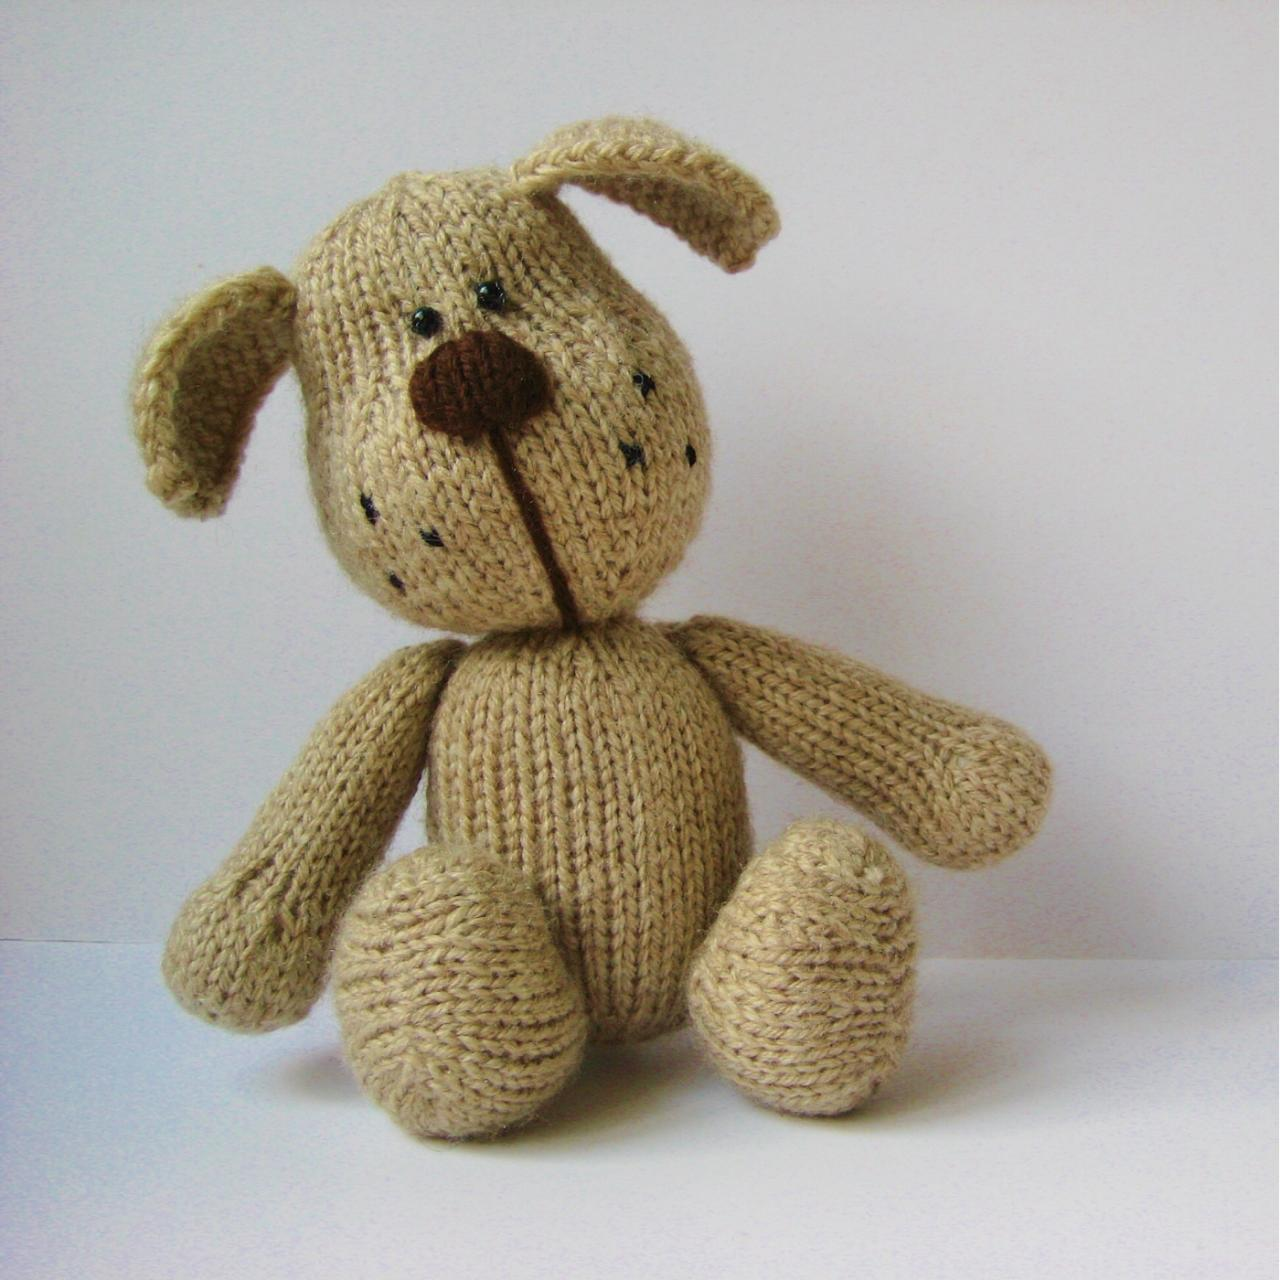 Free Knitting Patterns Stuffed Toys : Bernie The Dog Toy Knitting Pattern on Luulla